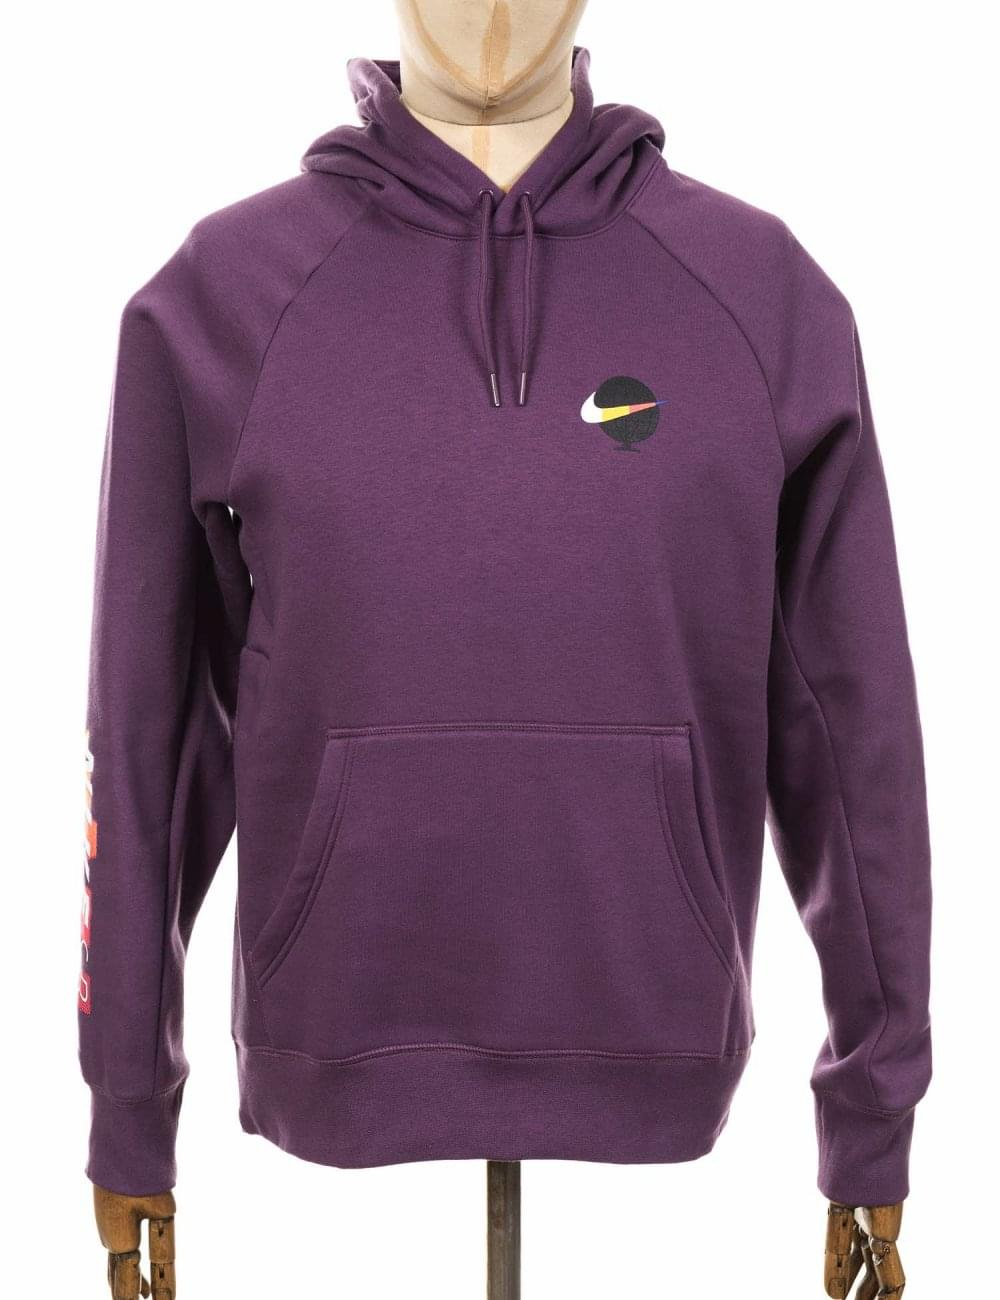 Nike SB Icon GFX Hooded Sweatshirt - Pro Purple White - Clothing ... f52423706